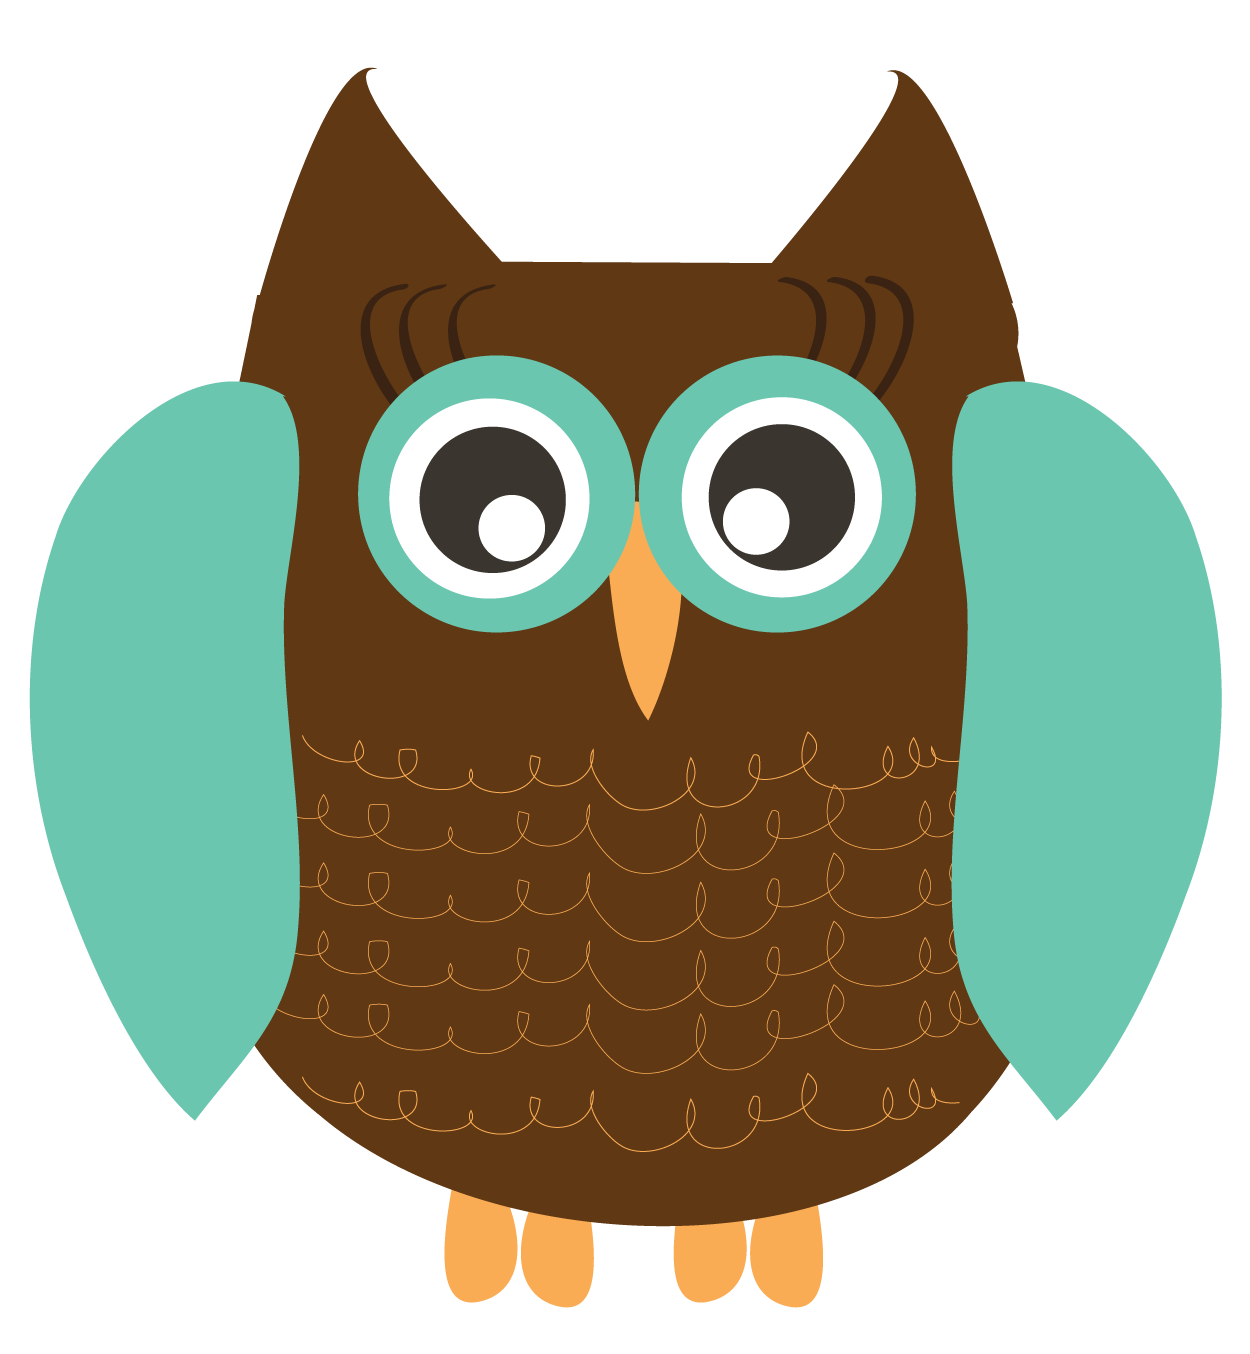 Owl clipart cute Clip for 2 owl owls